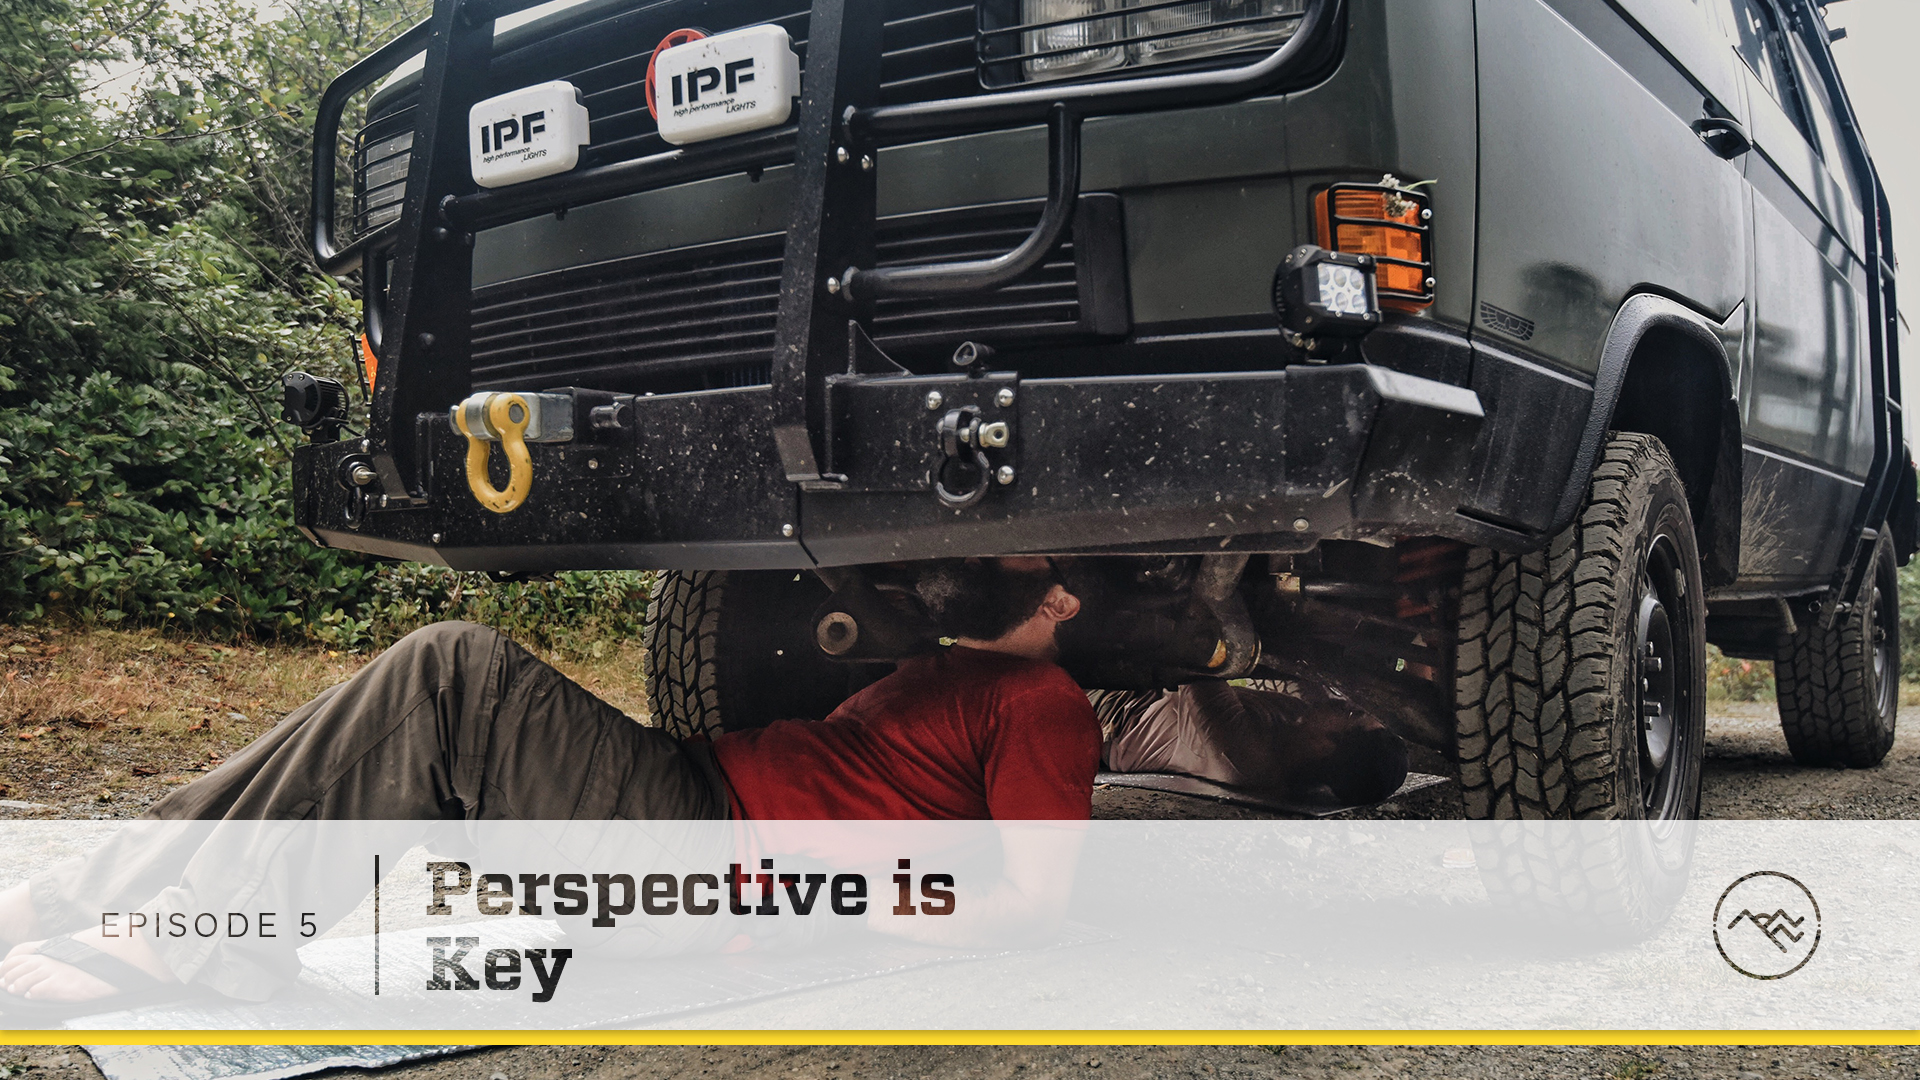 E05: Perspective is Key